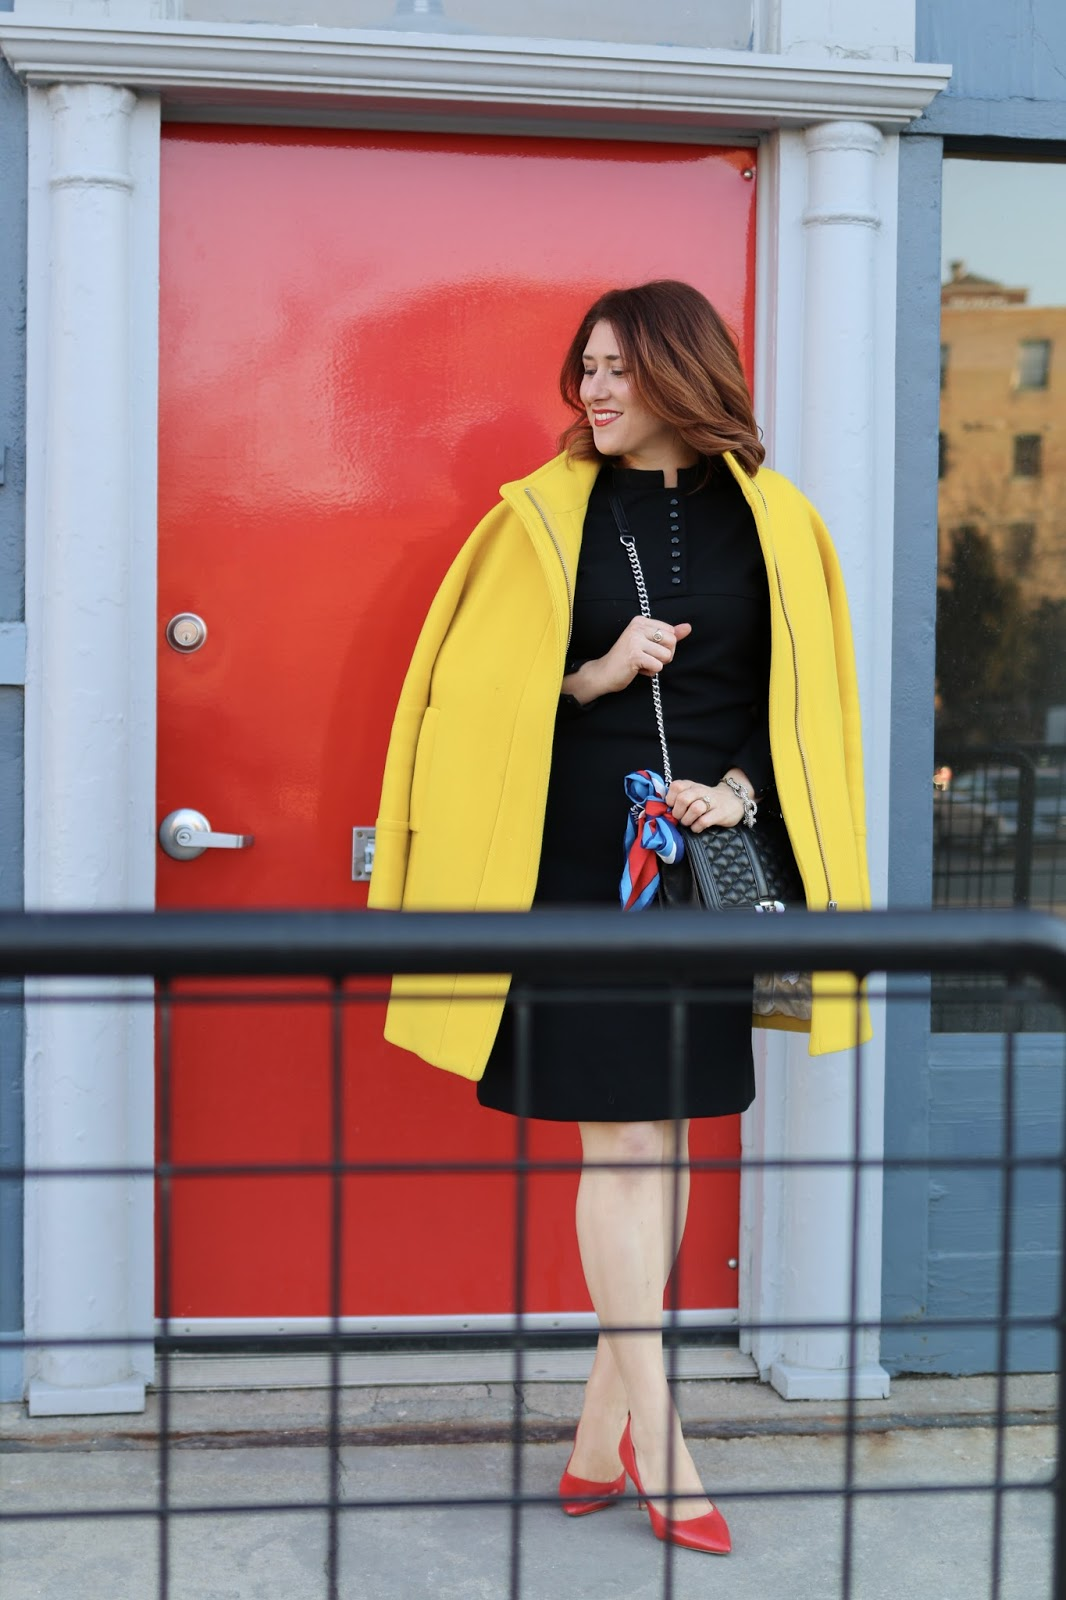 LBD, Red hair, winter dress. dress with sleeves, red hairstyle, yellow cocoon coat j crew, red heels, comfortable heels, rebecca minkoff love cross body, vintage black dress